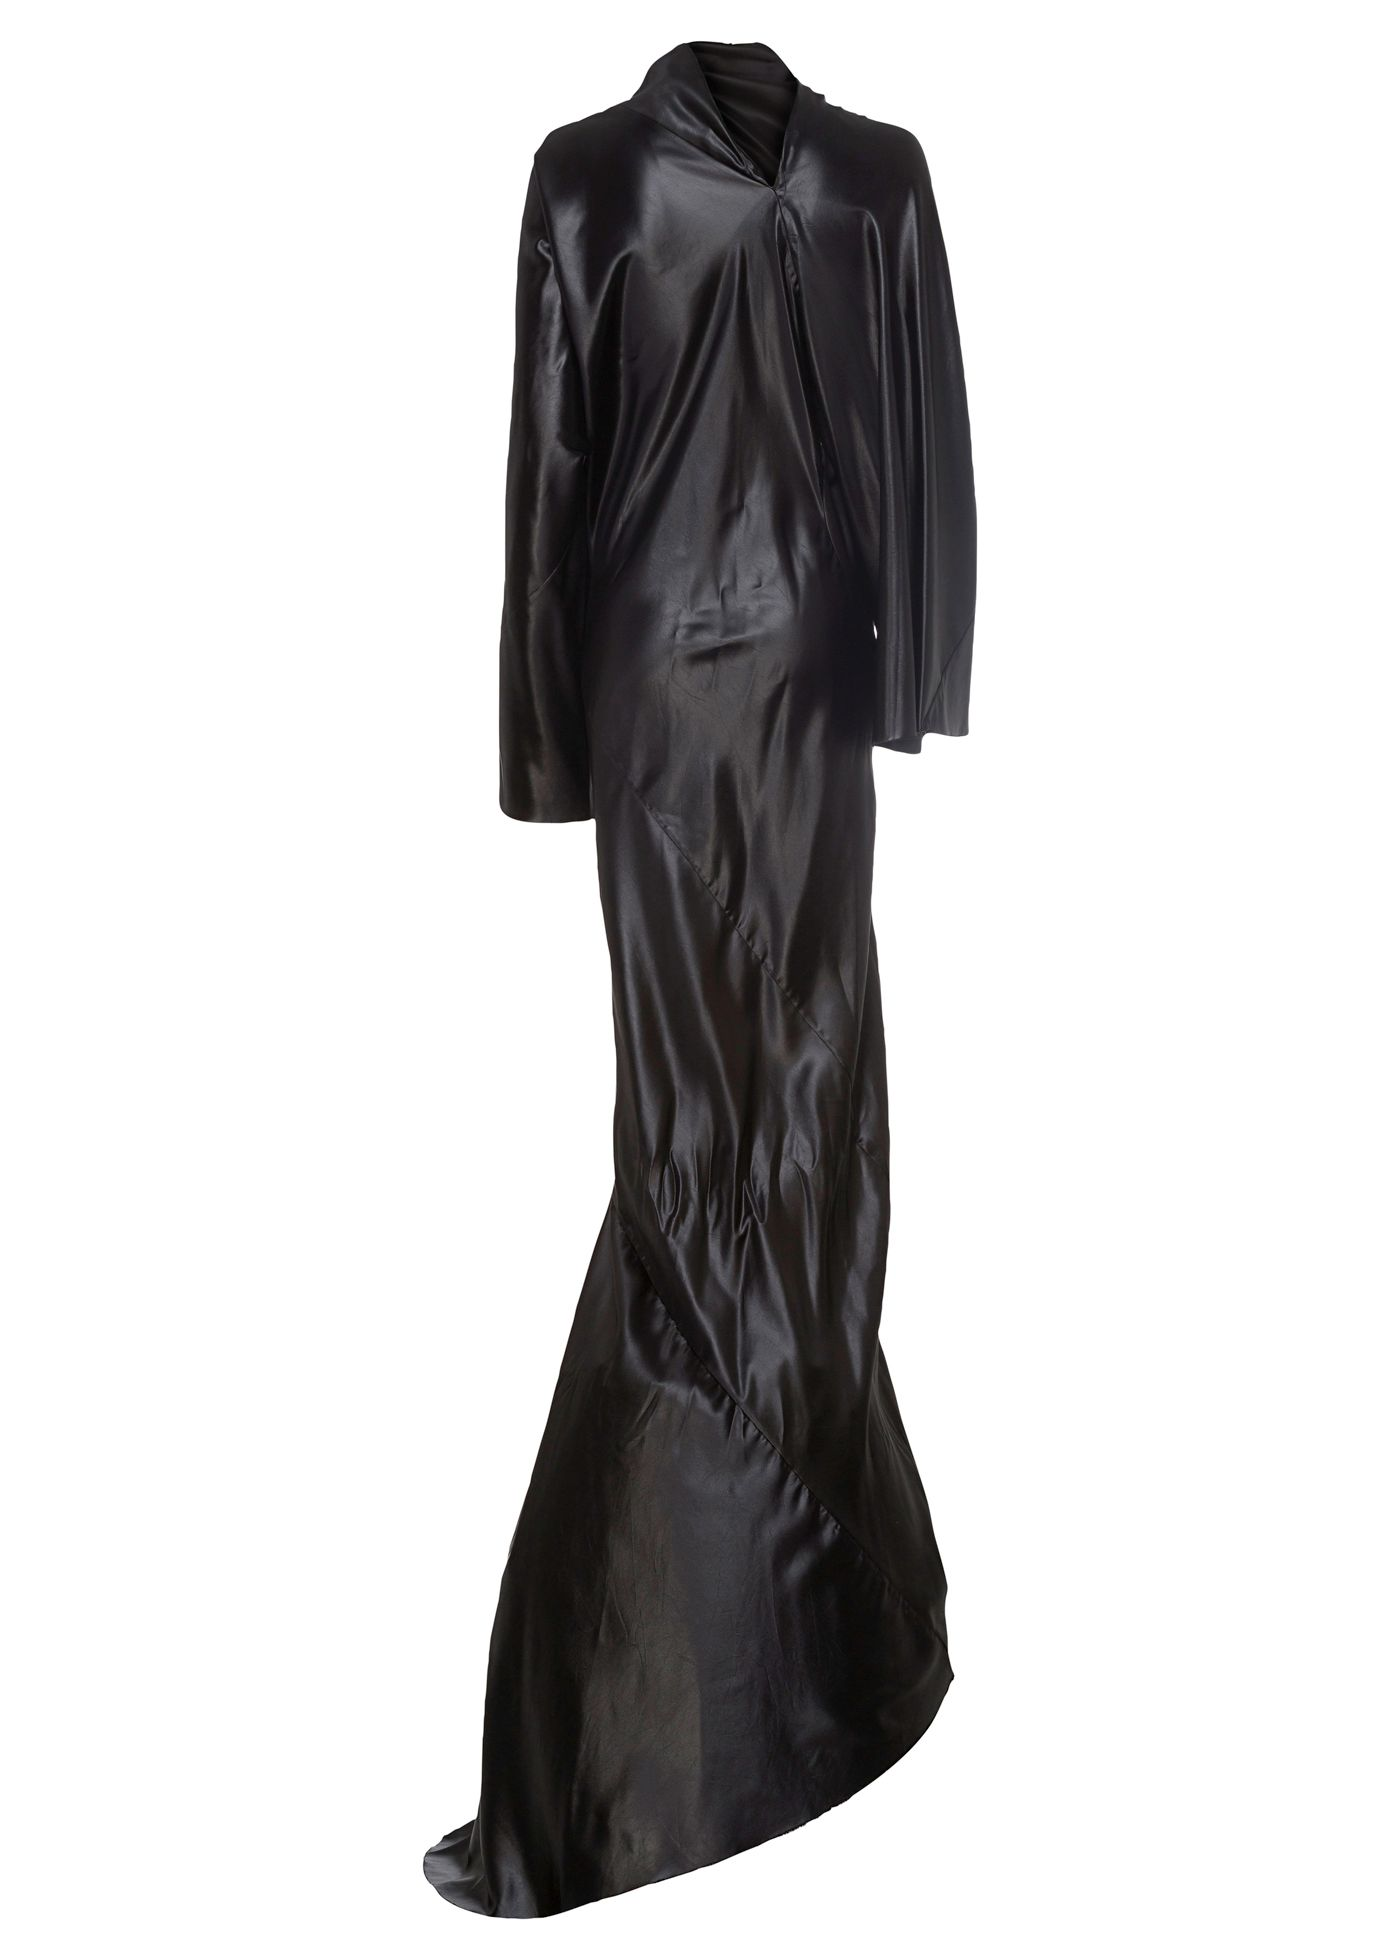 ABITO - SEB GOWN image number 1